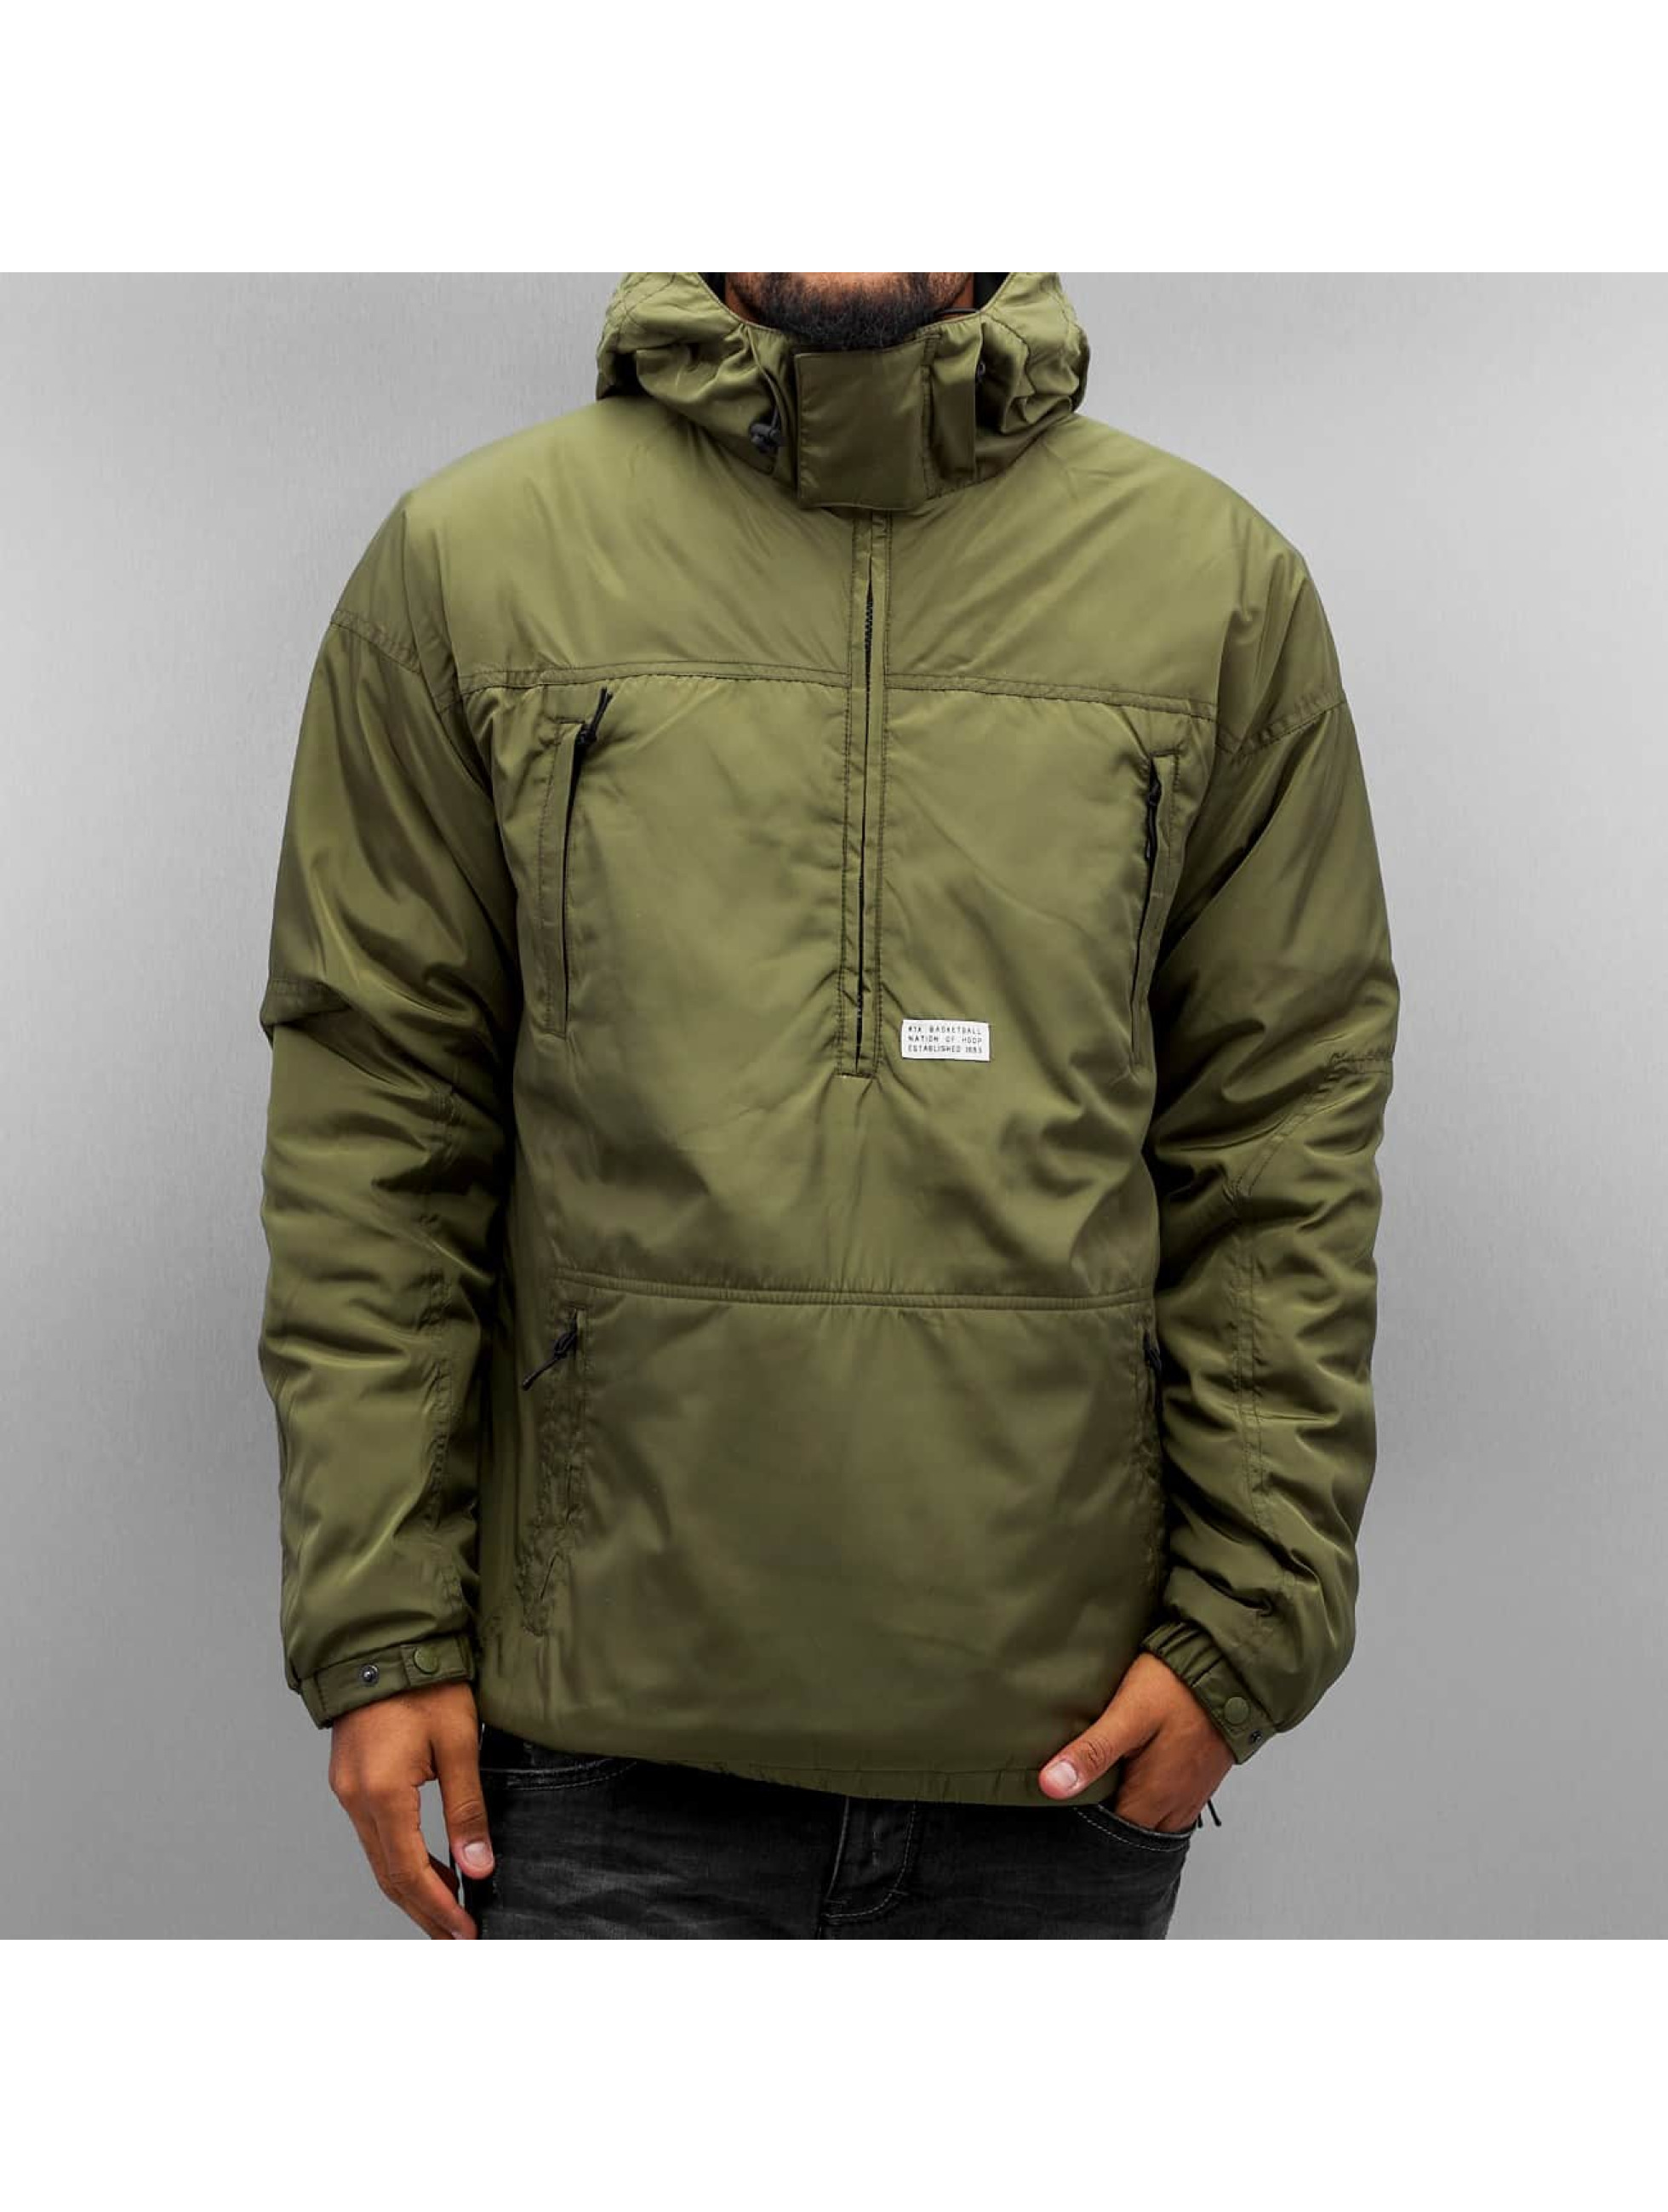 K1X Transitional Jackets Urban Hooded oliven